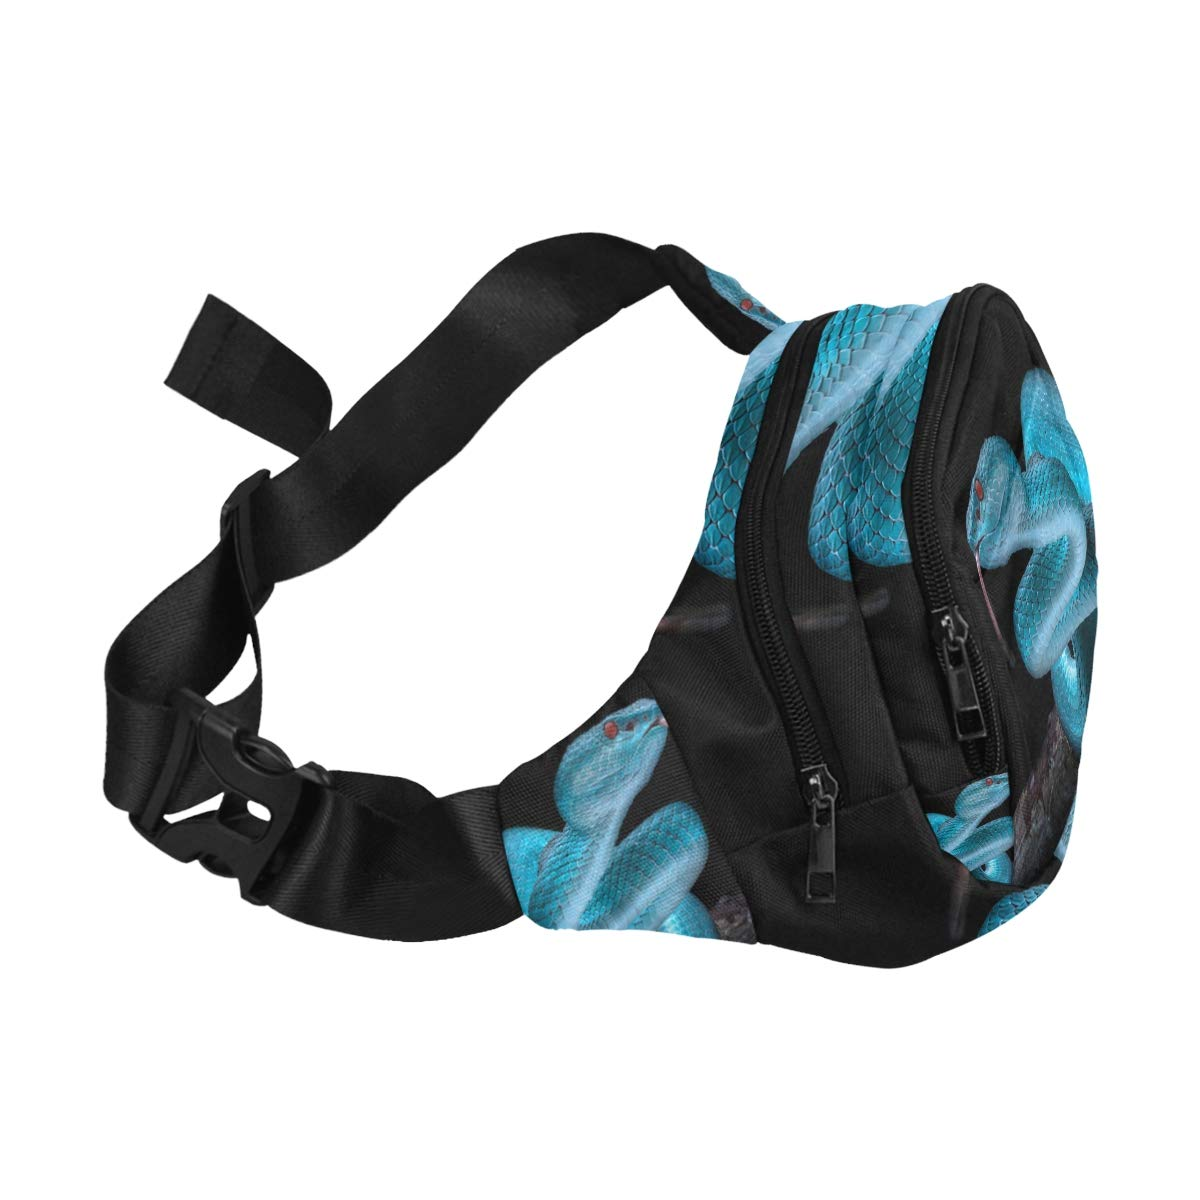 A Fierce Cold-blooded Snake Fenny Packs Waist Bags Adjustable Belt Waterproof Nylon Travel Running Sport Vacation Party For Men Women Boys Girls Kids